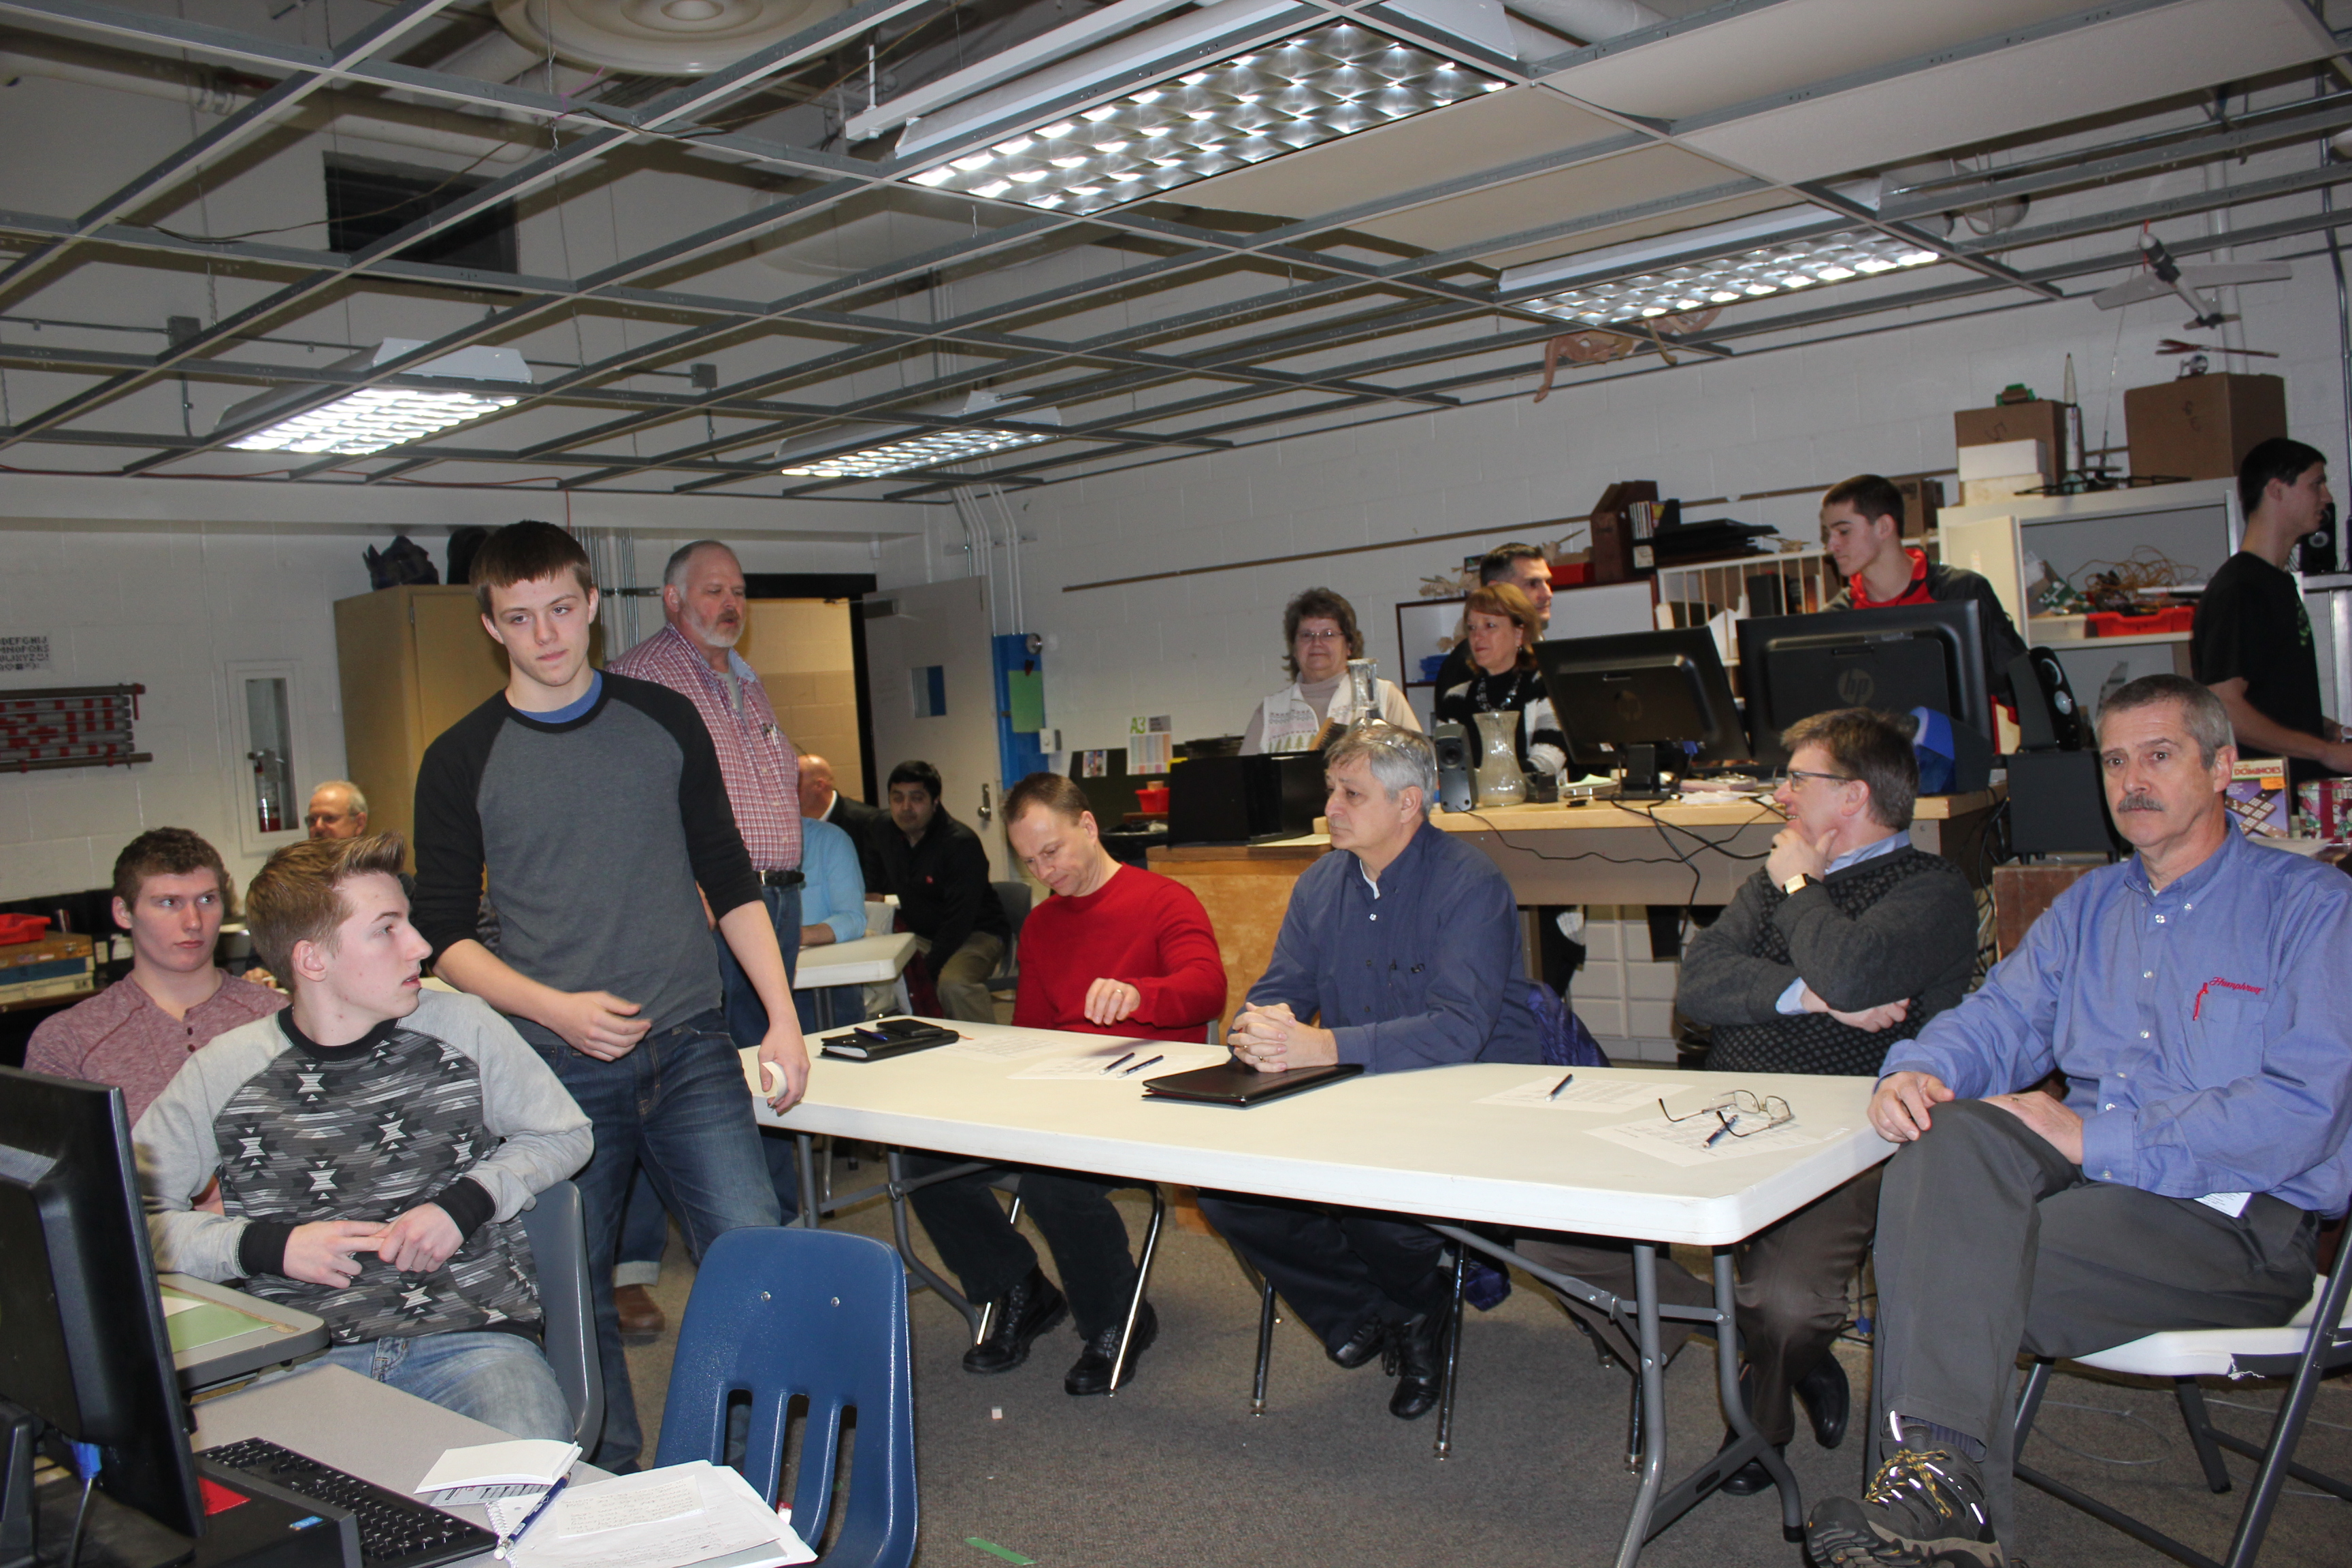 Project Lead The Way Utilized In Industrial Arts Program